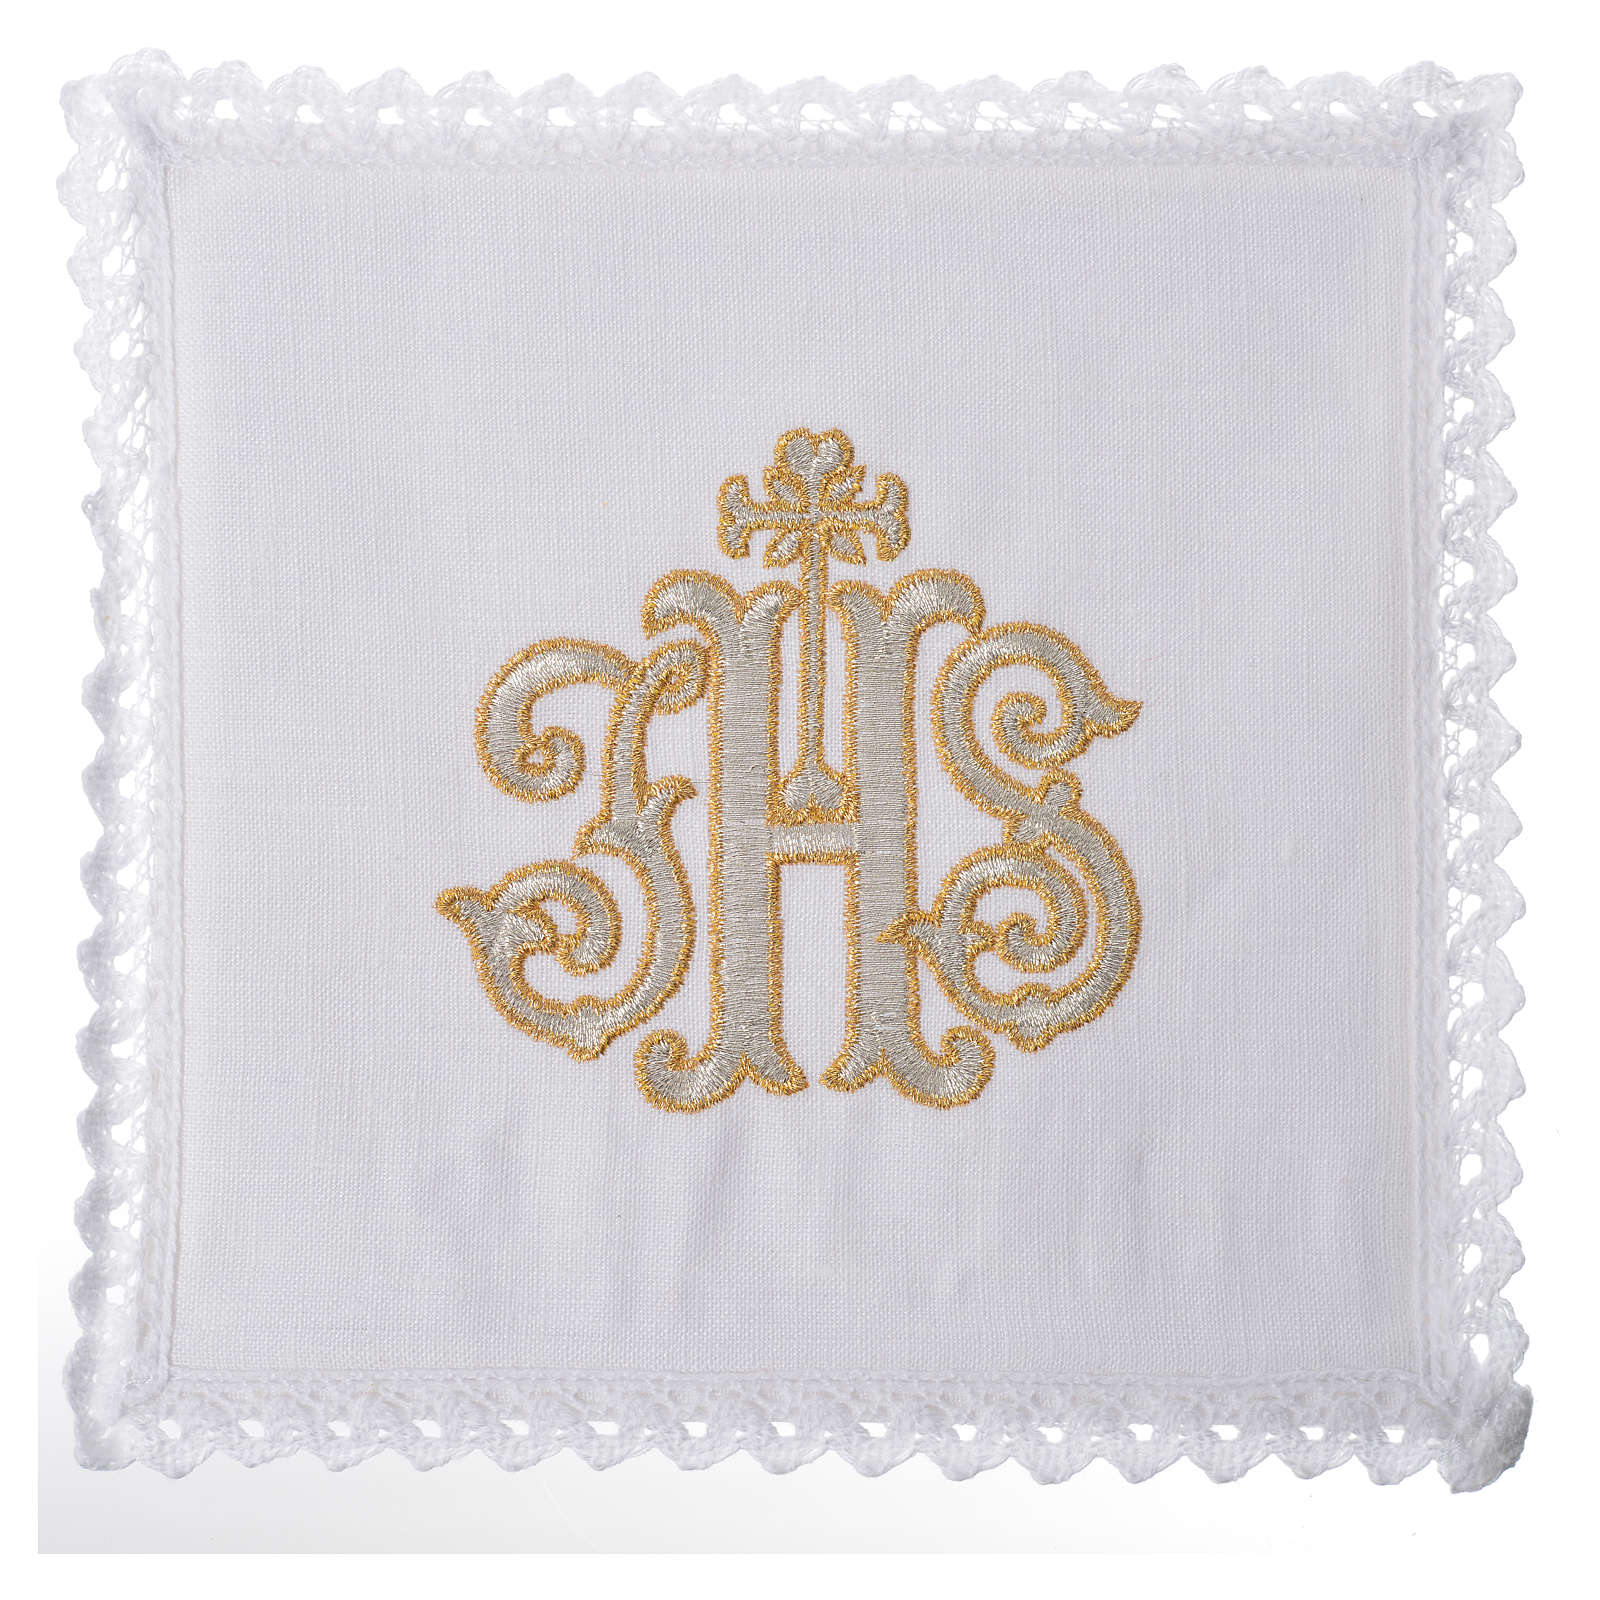 Altar linens set, 100% linen decorated with IHS 4